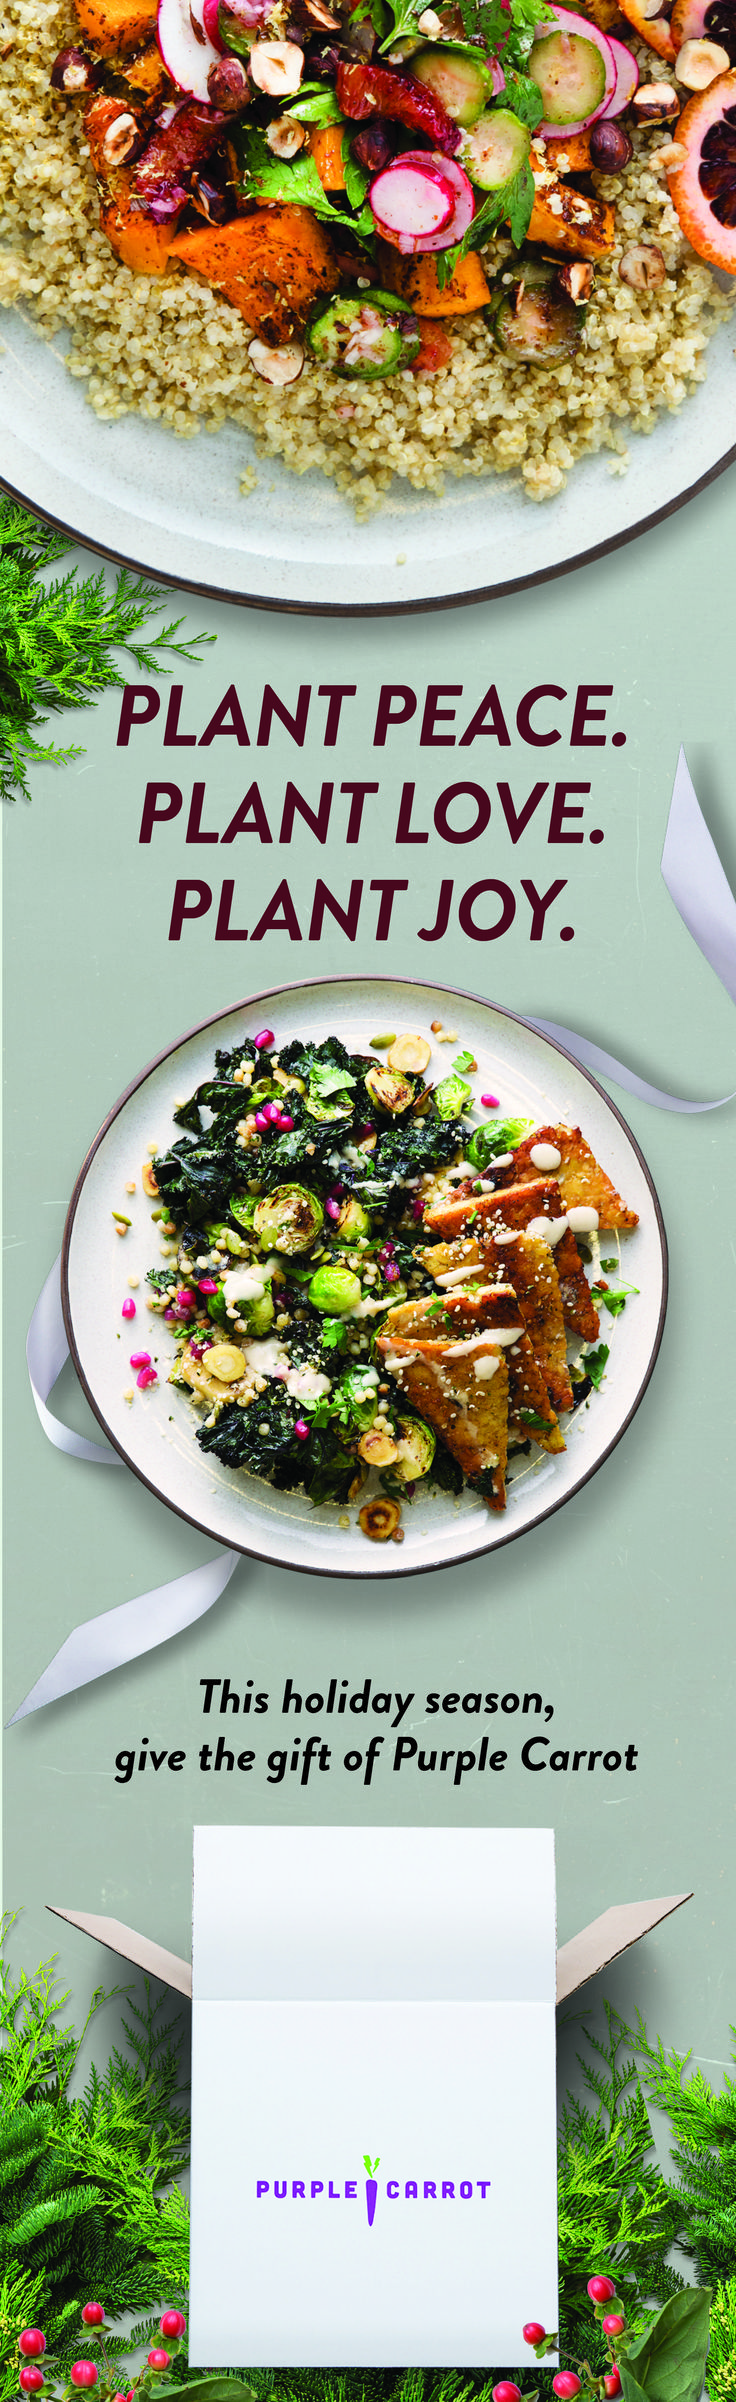 Give healthy vegan meals. Each Purple Carrot box is packed full of delicious plant-based recipes and fresh ingredients.